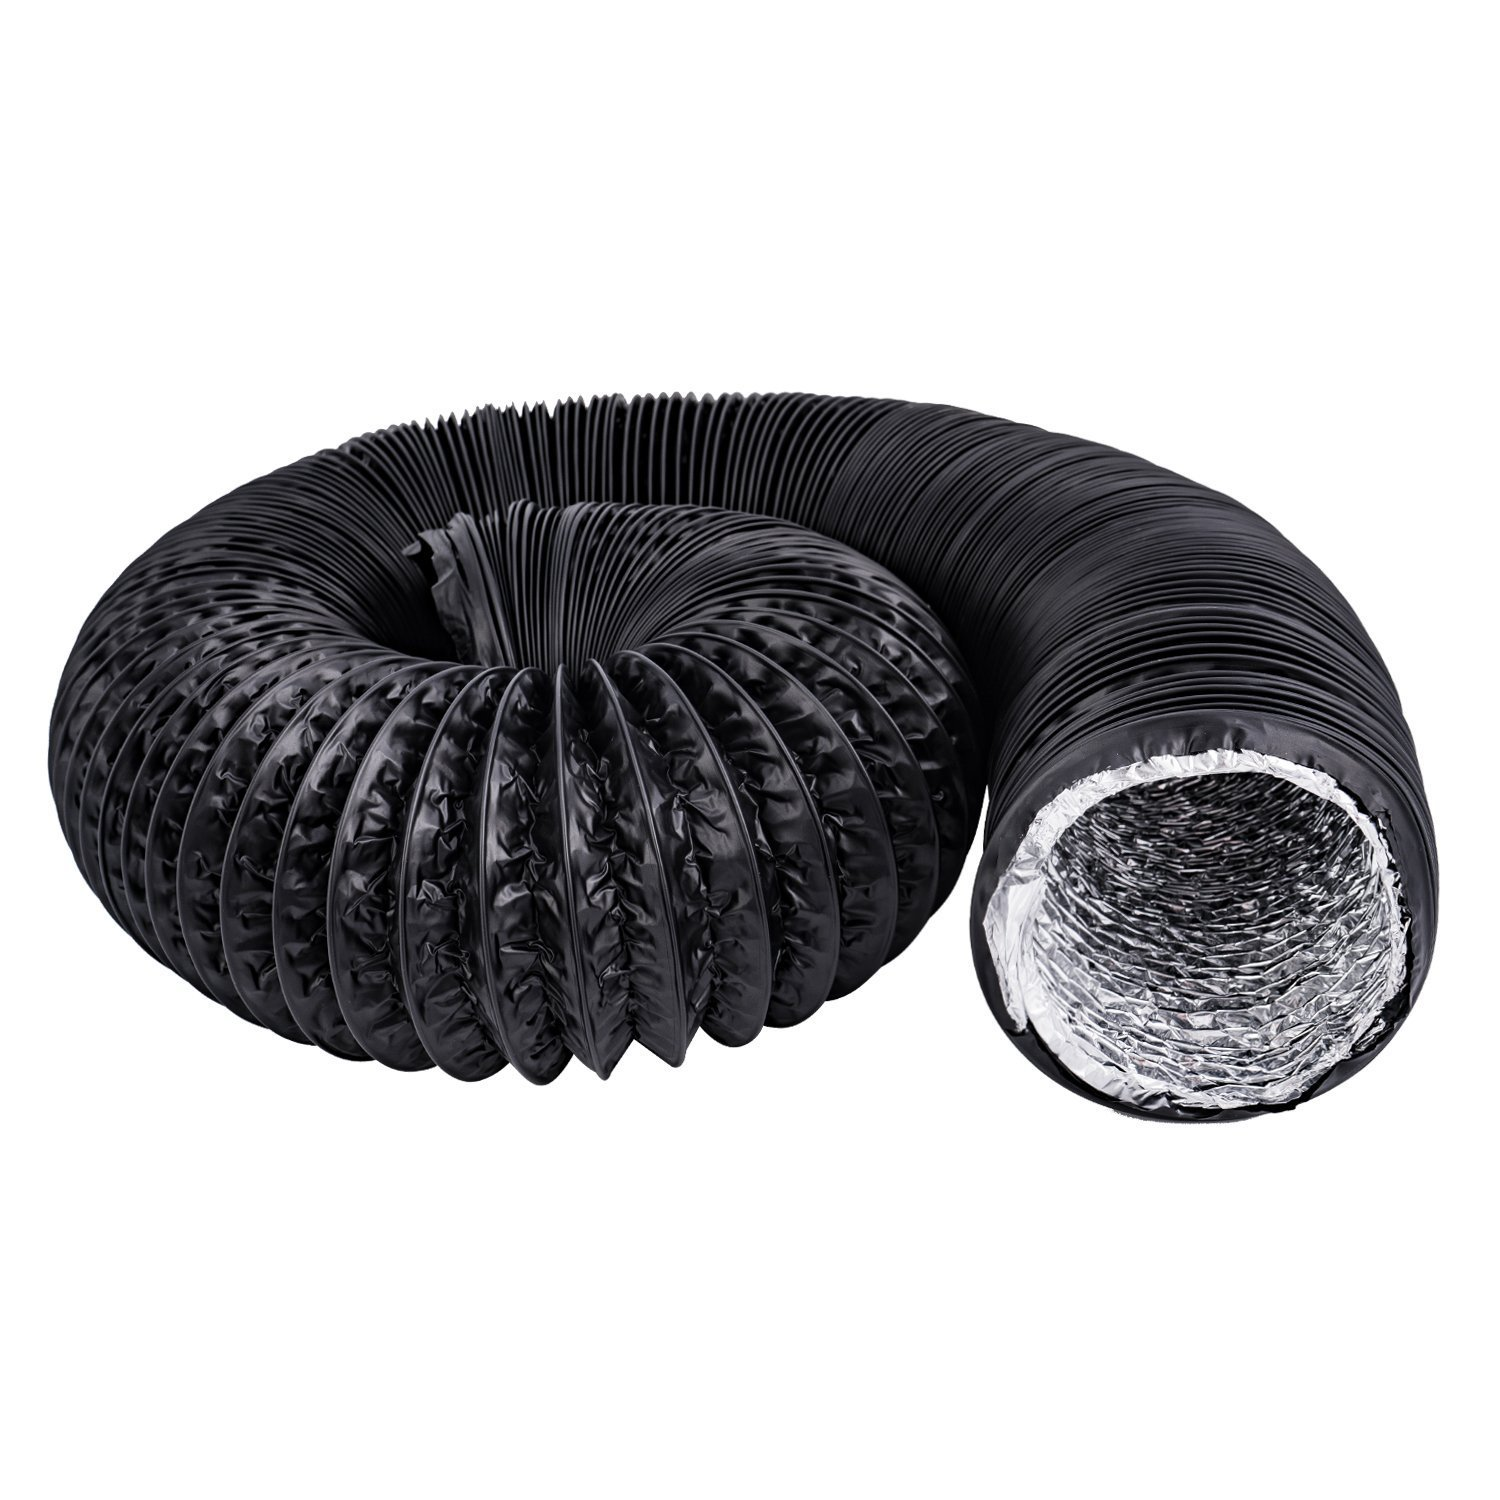 Hon&Guan 4 inch Air Duct - 32 FT Long, Black Flexible Ducting HVAC Ventilation Air Hose for Grow Tents, Dryer Rooms,Kitchen